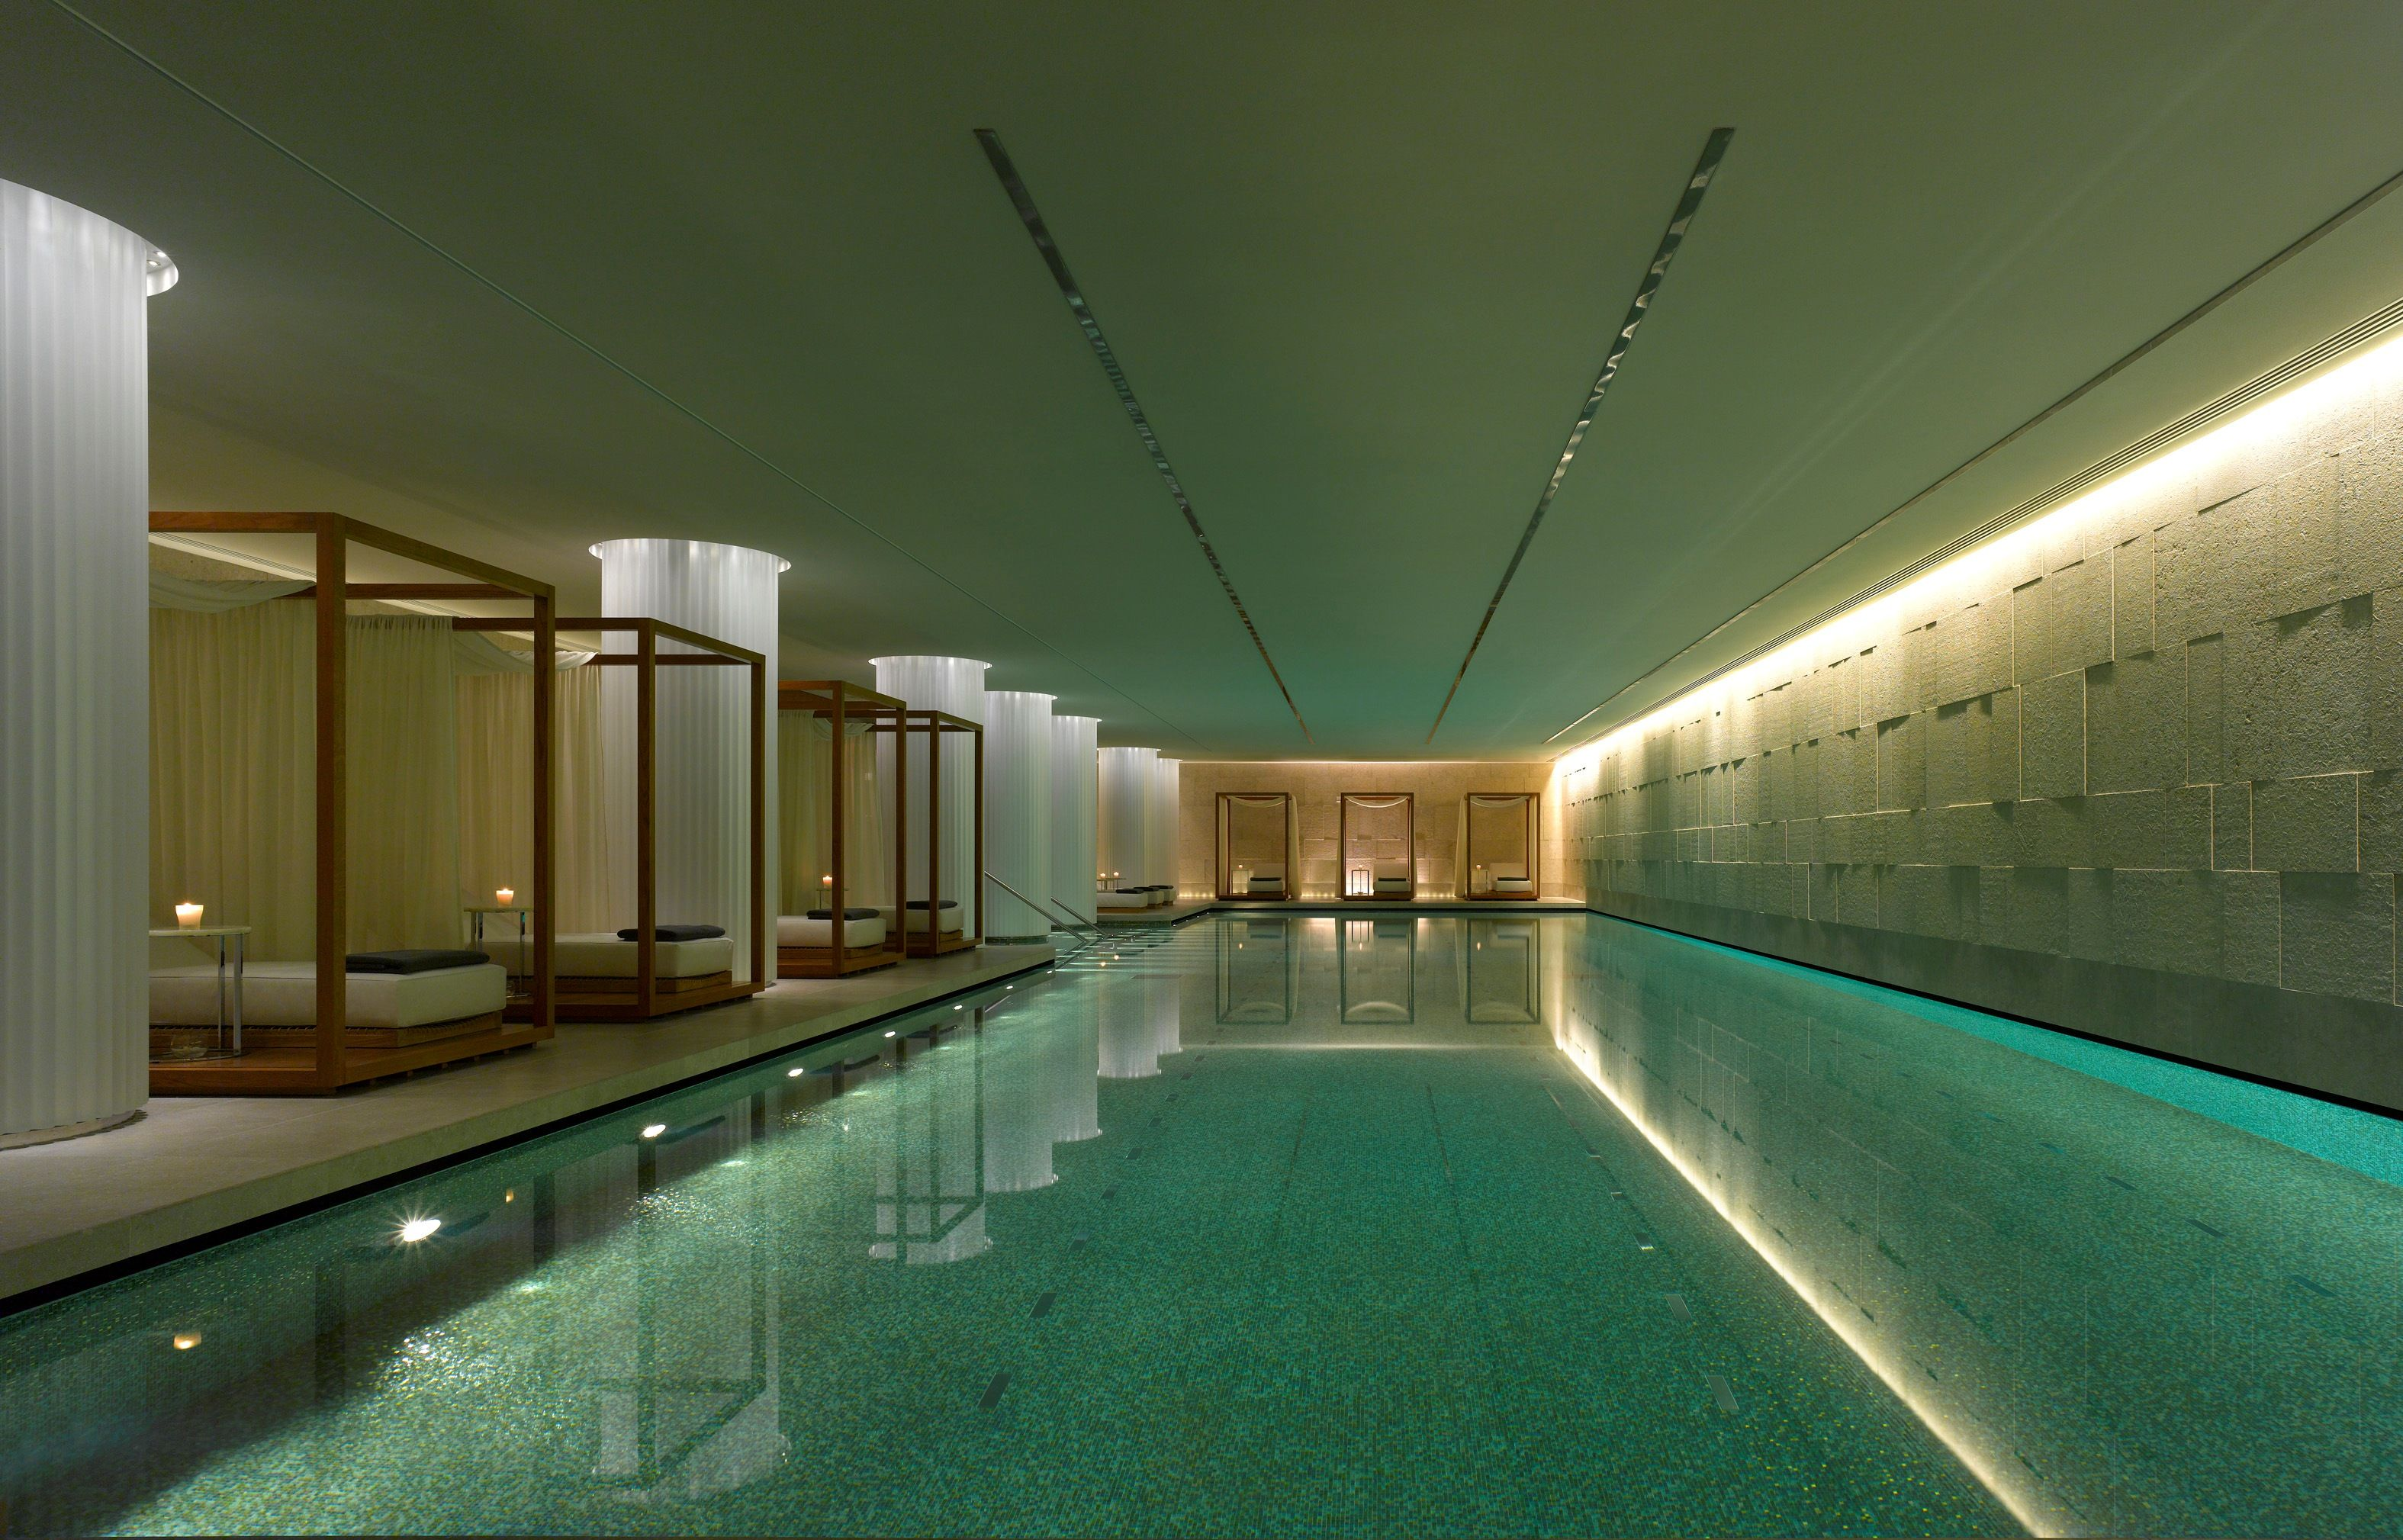 Bulgari Spa at Bulgari Hotel | Bulgari hotel london, Indoor ...